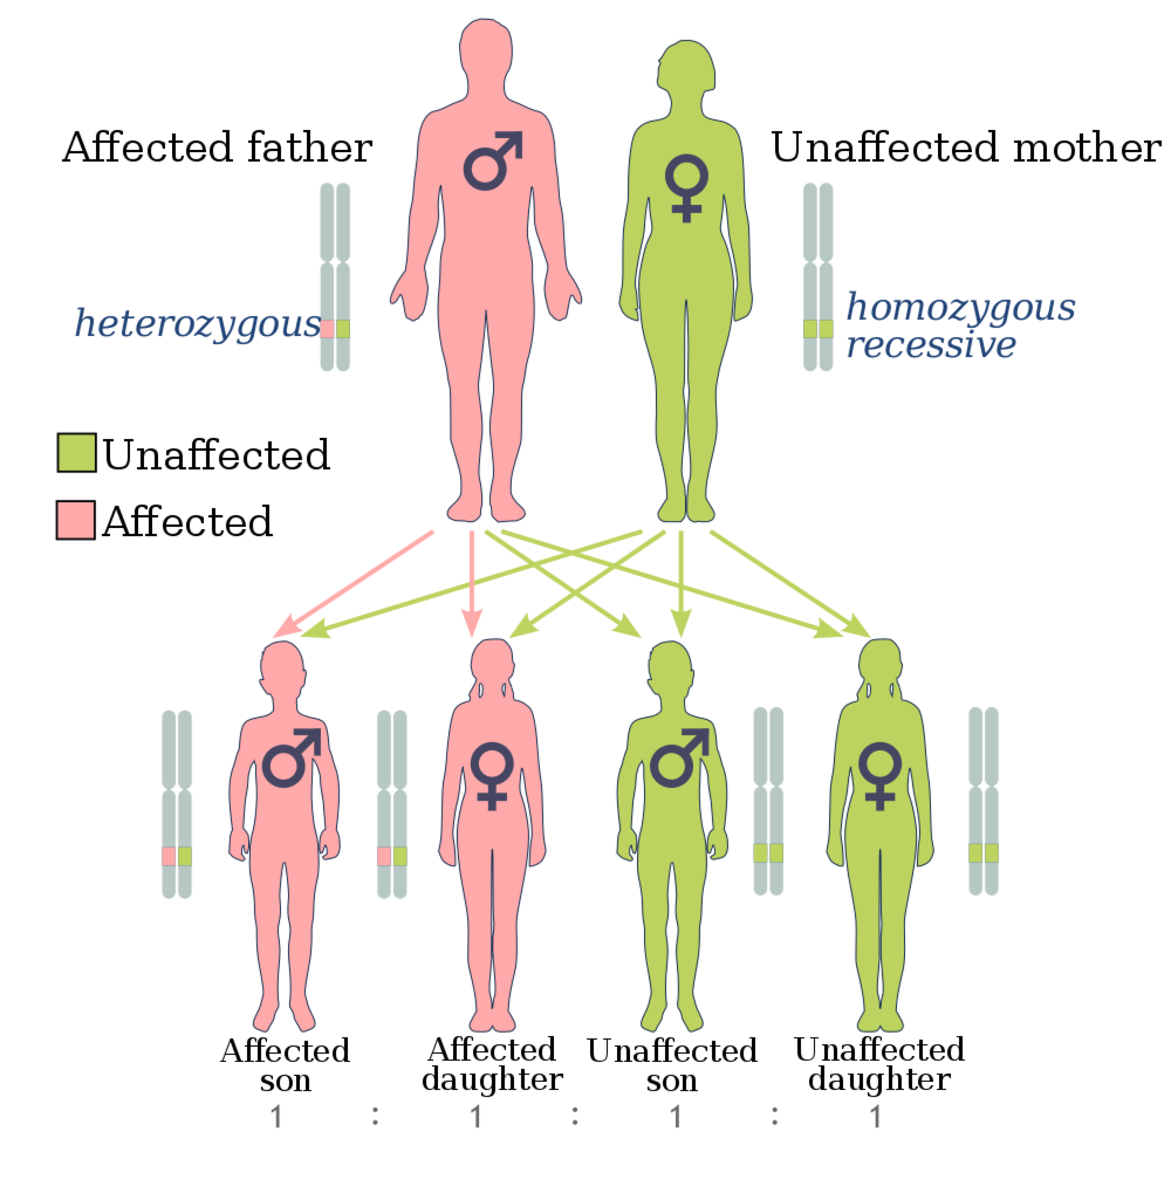 An illustration of how the BRCA genes may be inherited. Documenting your family medical history is important when seeking genetic counseling and testing.